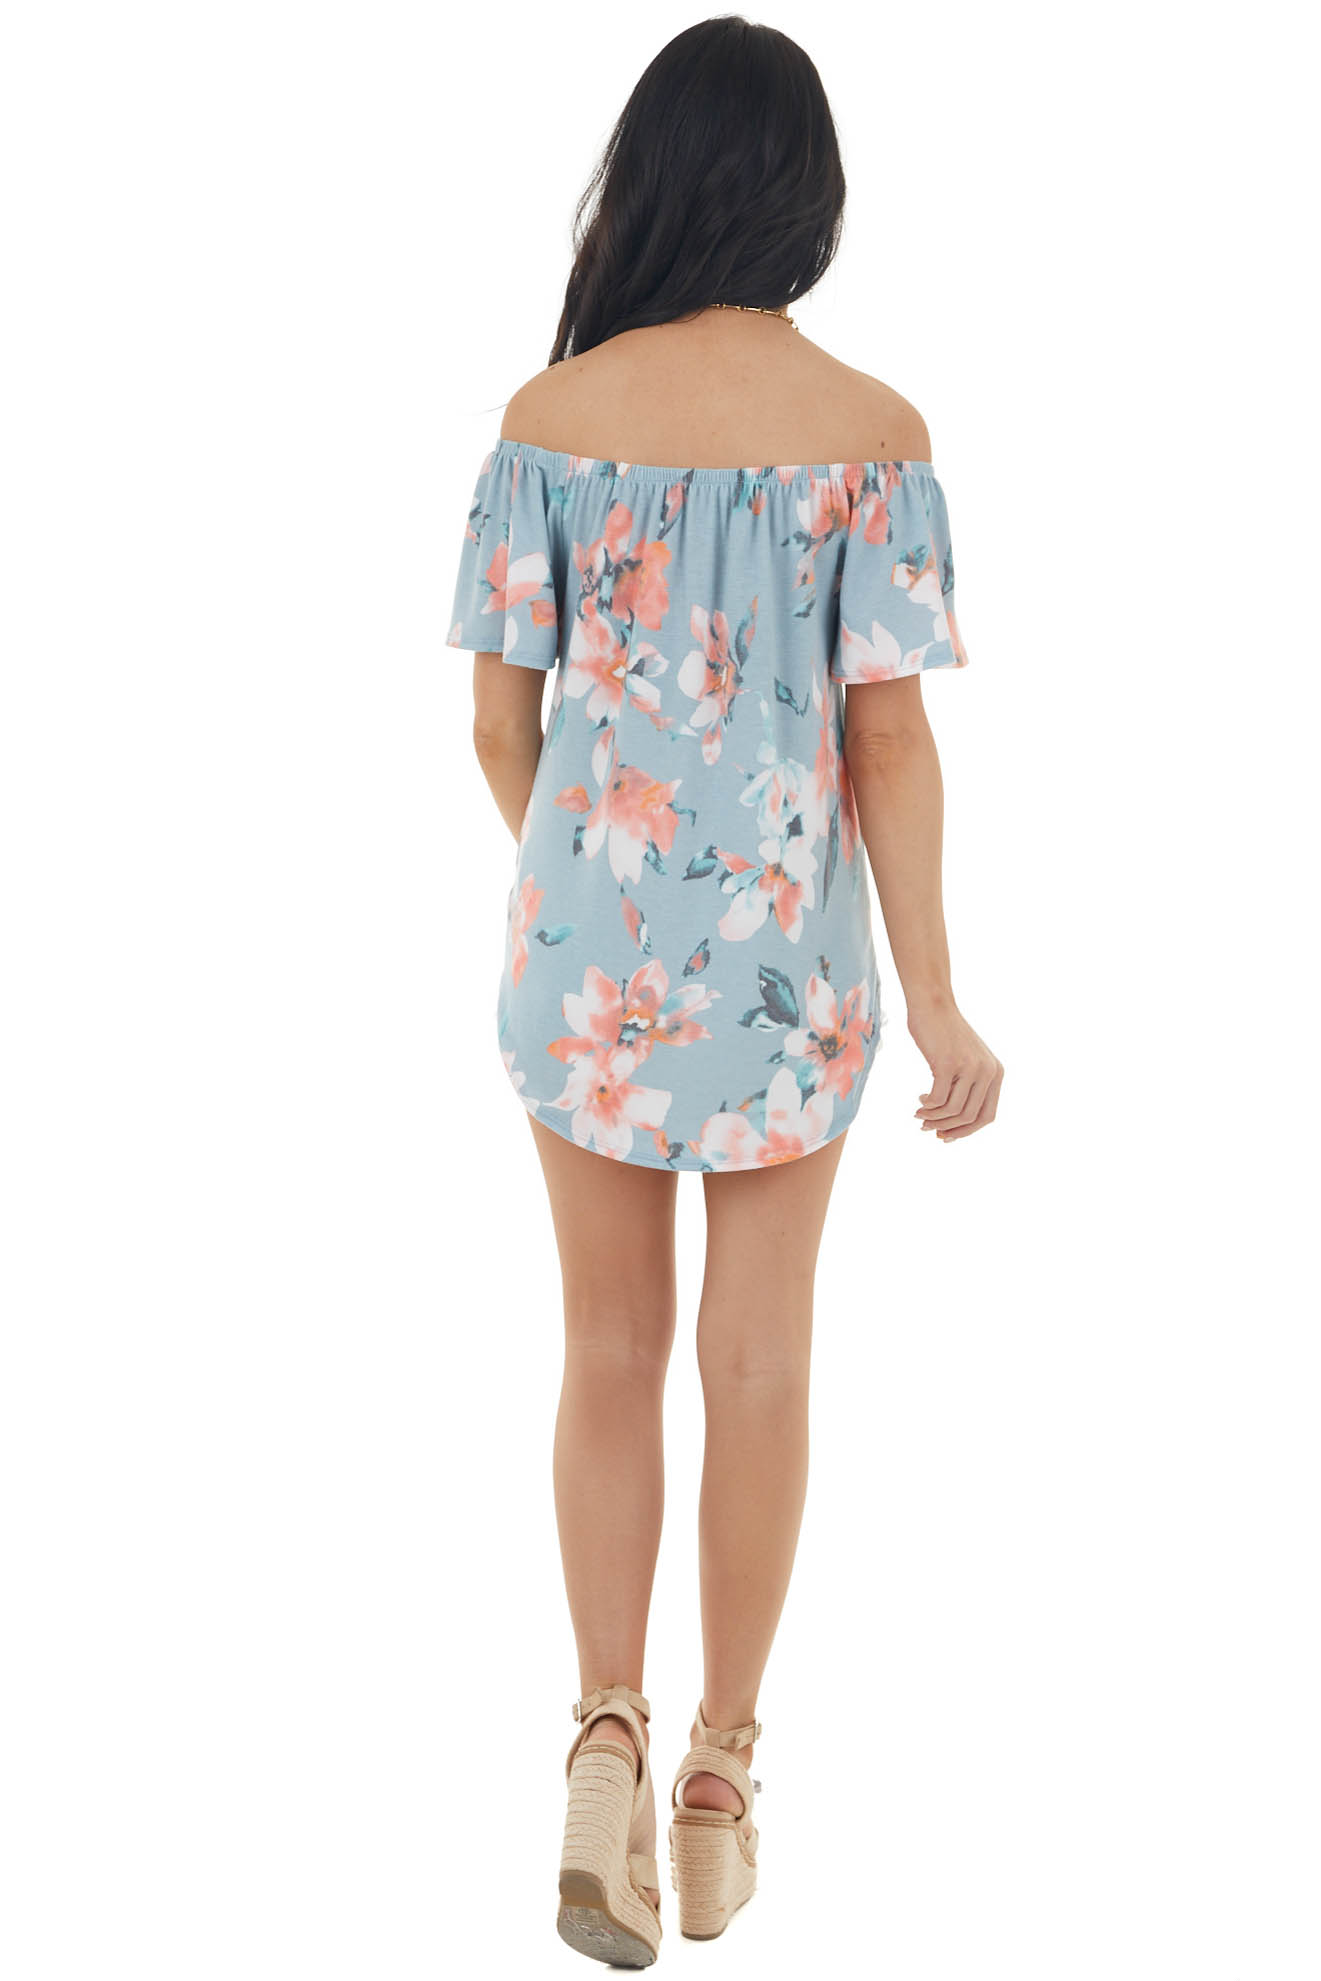 Sky Blue Floral Off the Shoulder Top with Front Tie Detail